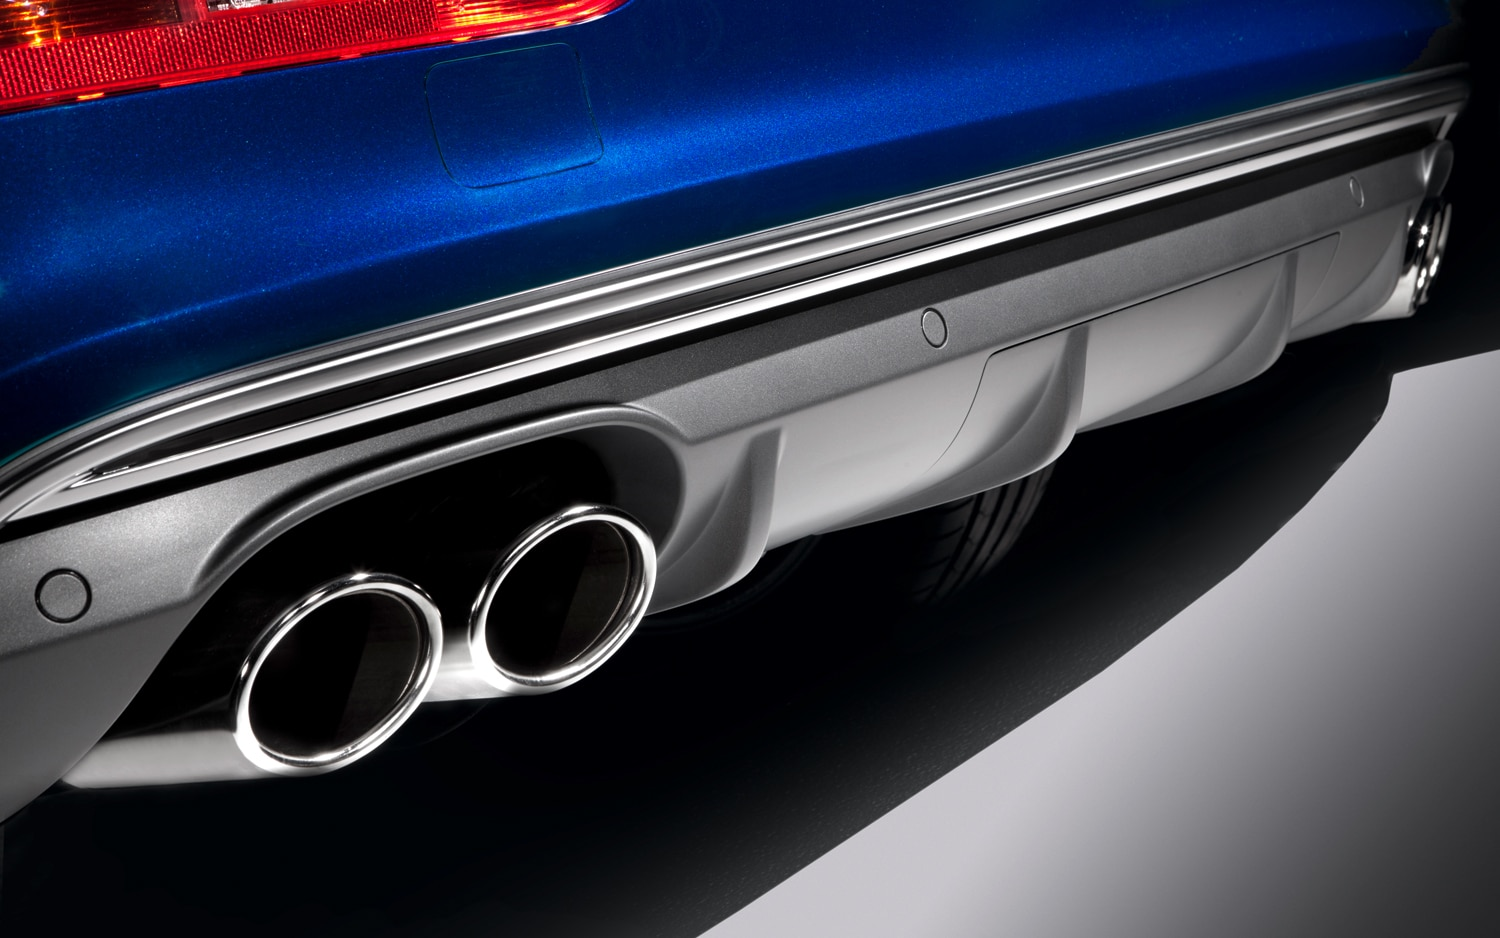 2013 Audi Q5 Rear Exhaust